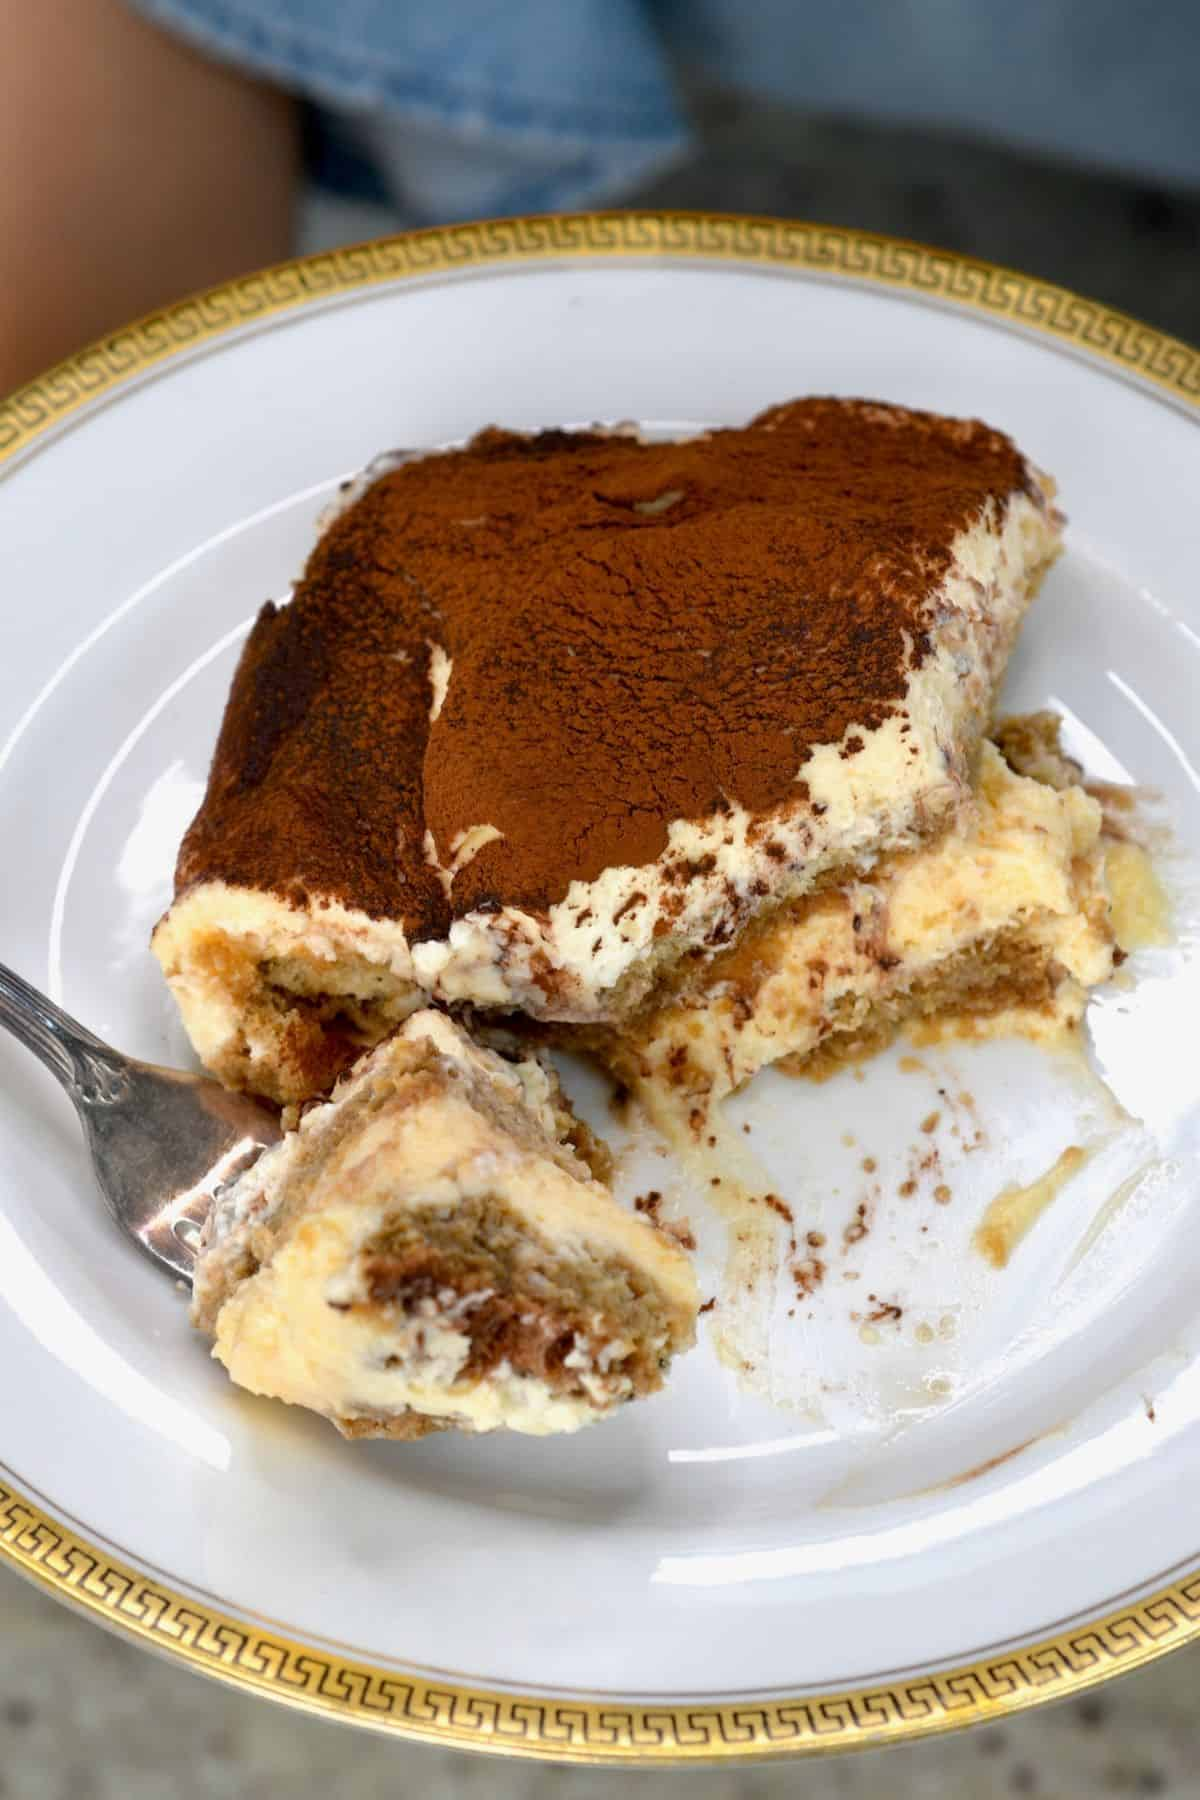 A serving of tiramisu on a plate with a fork